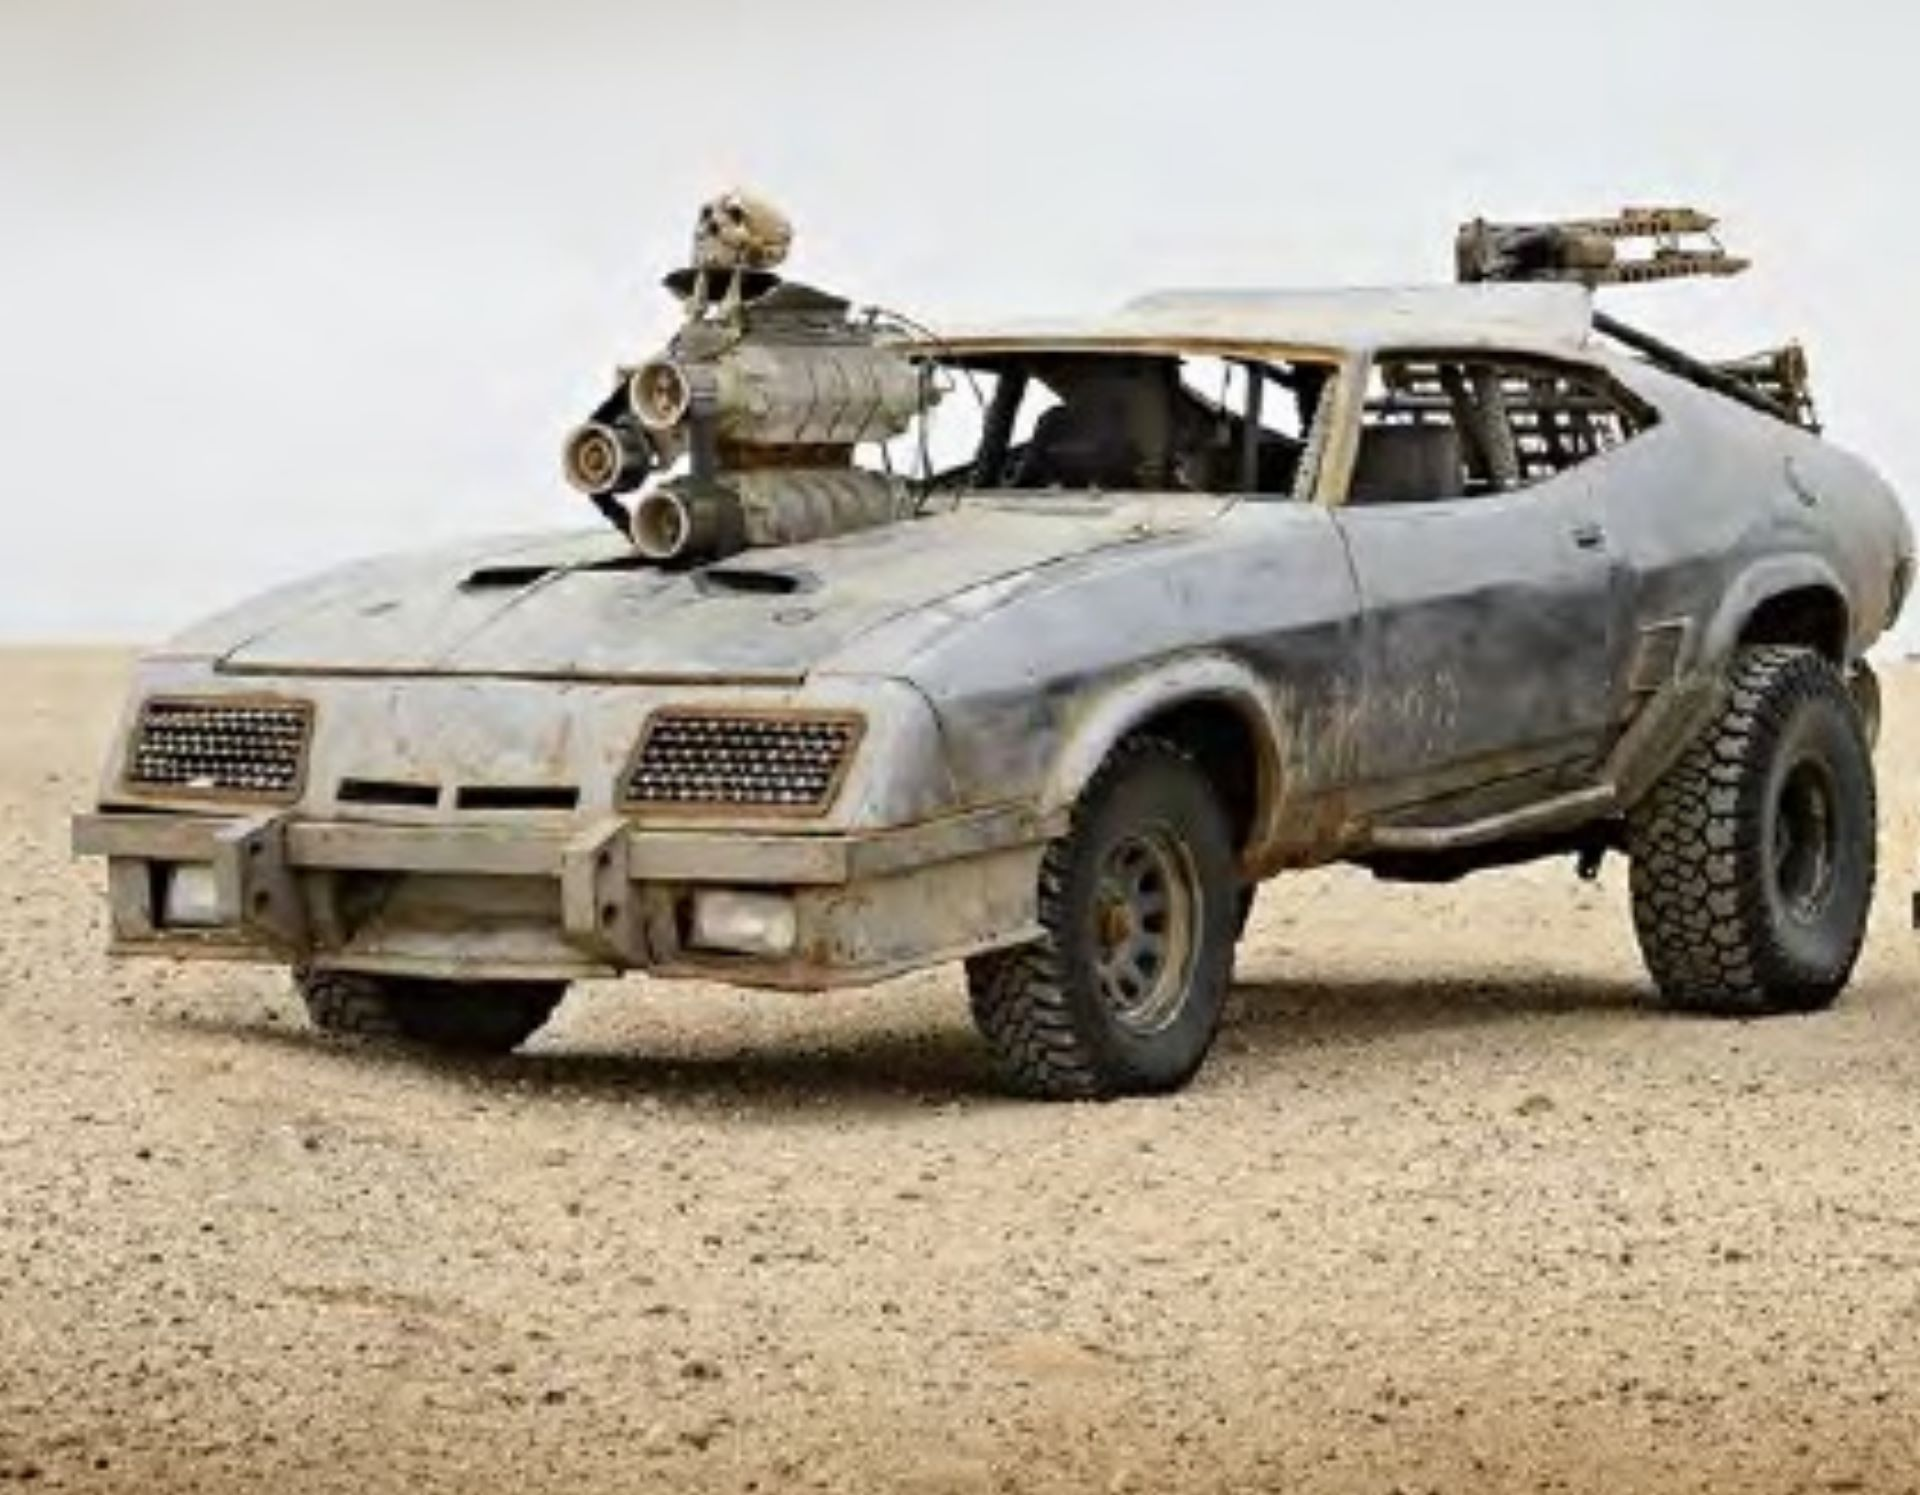 Mad-Max-Fury-Road-cars-for-sale-4